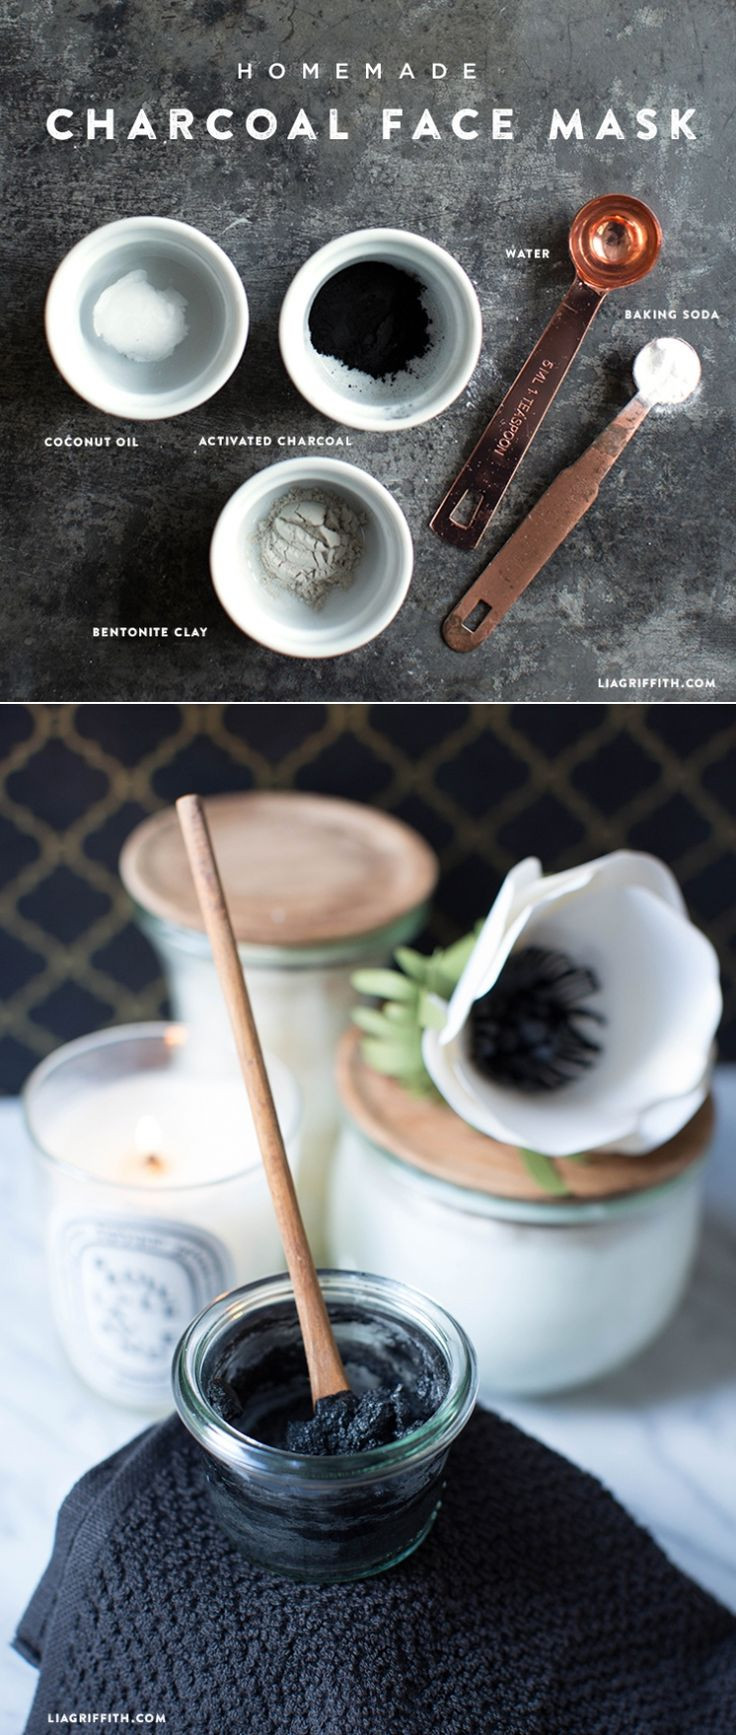 Charcoal Mask DIY Ingredients  Homemade Charcoal Face Mask Recipe